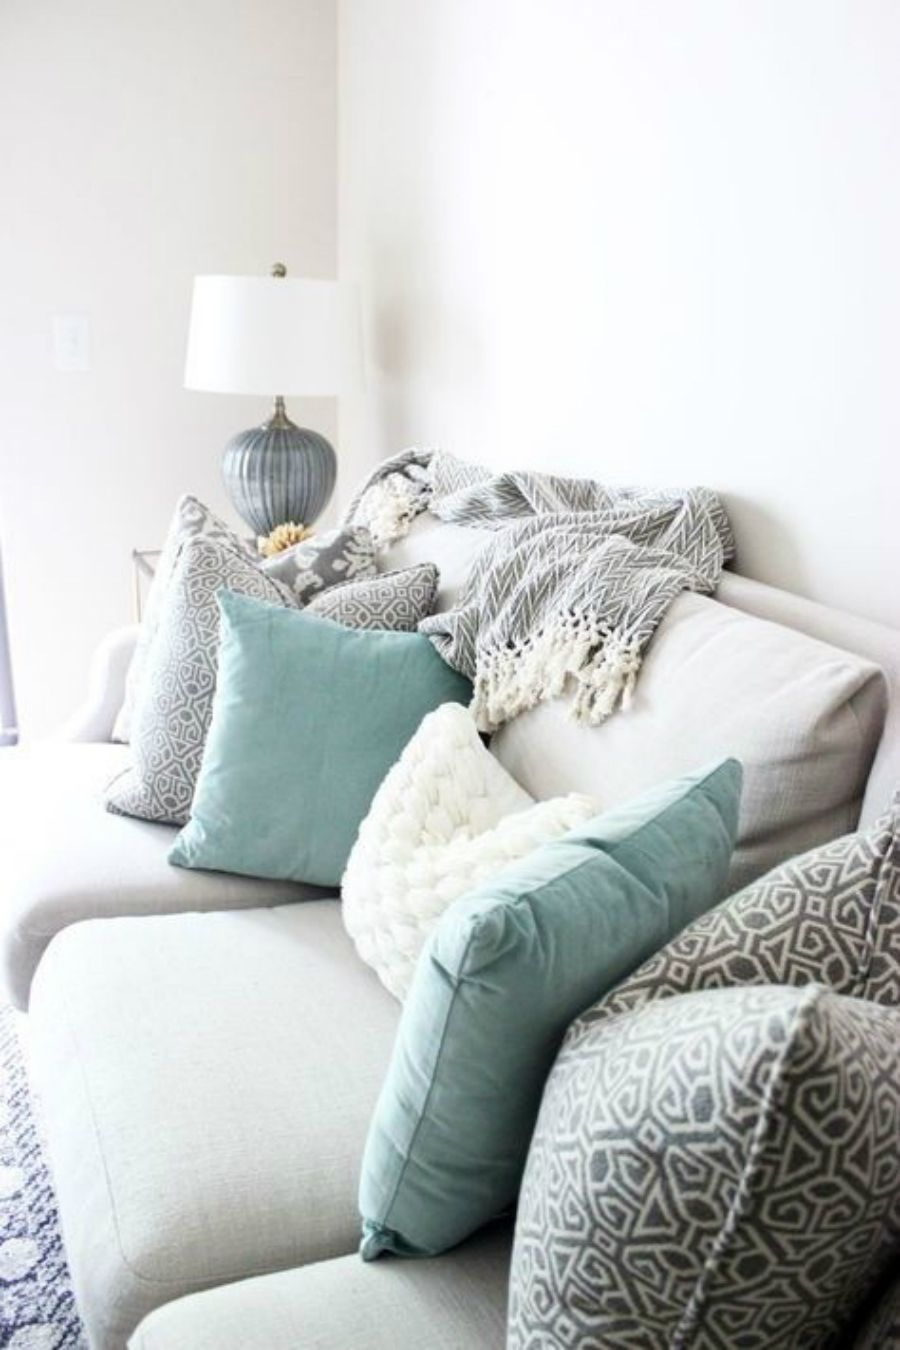 upholstery fabrics inspiration how to style with decorative pillows rh pinterest com